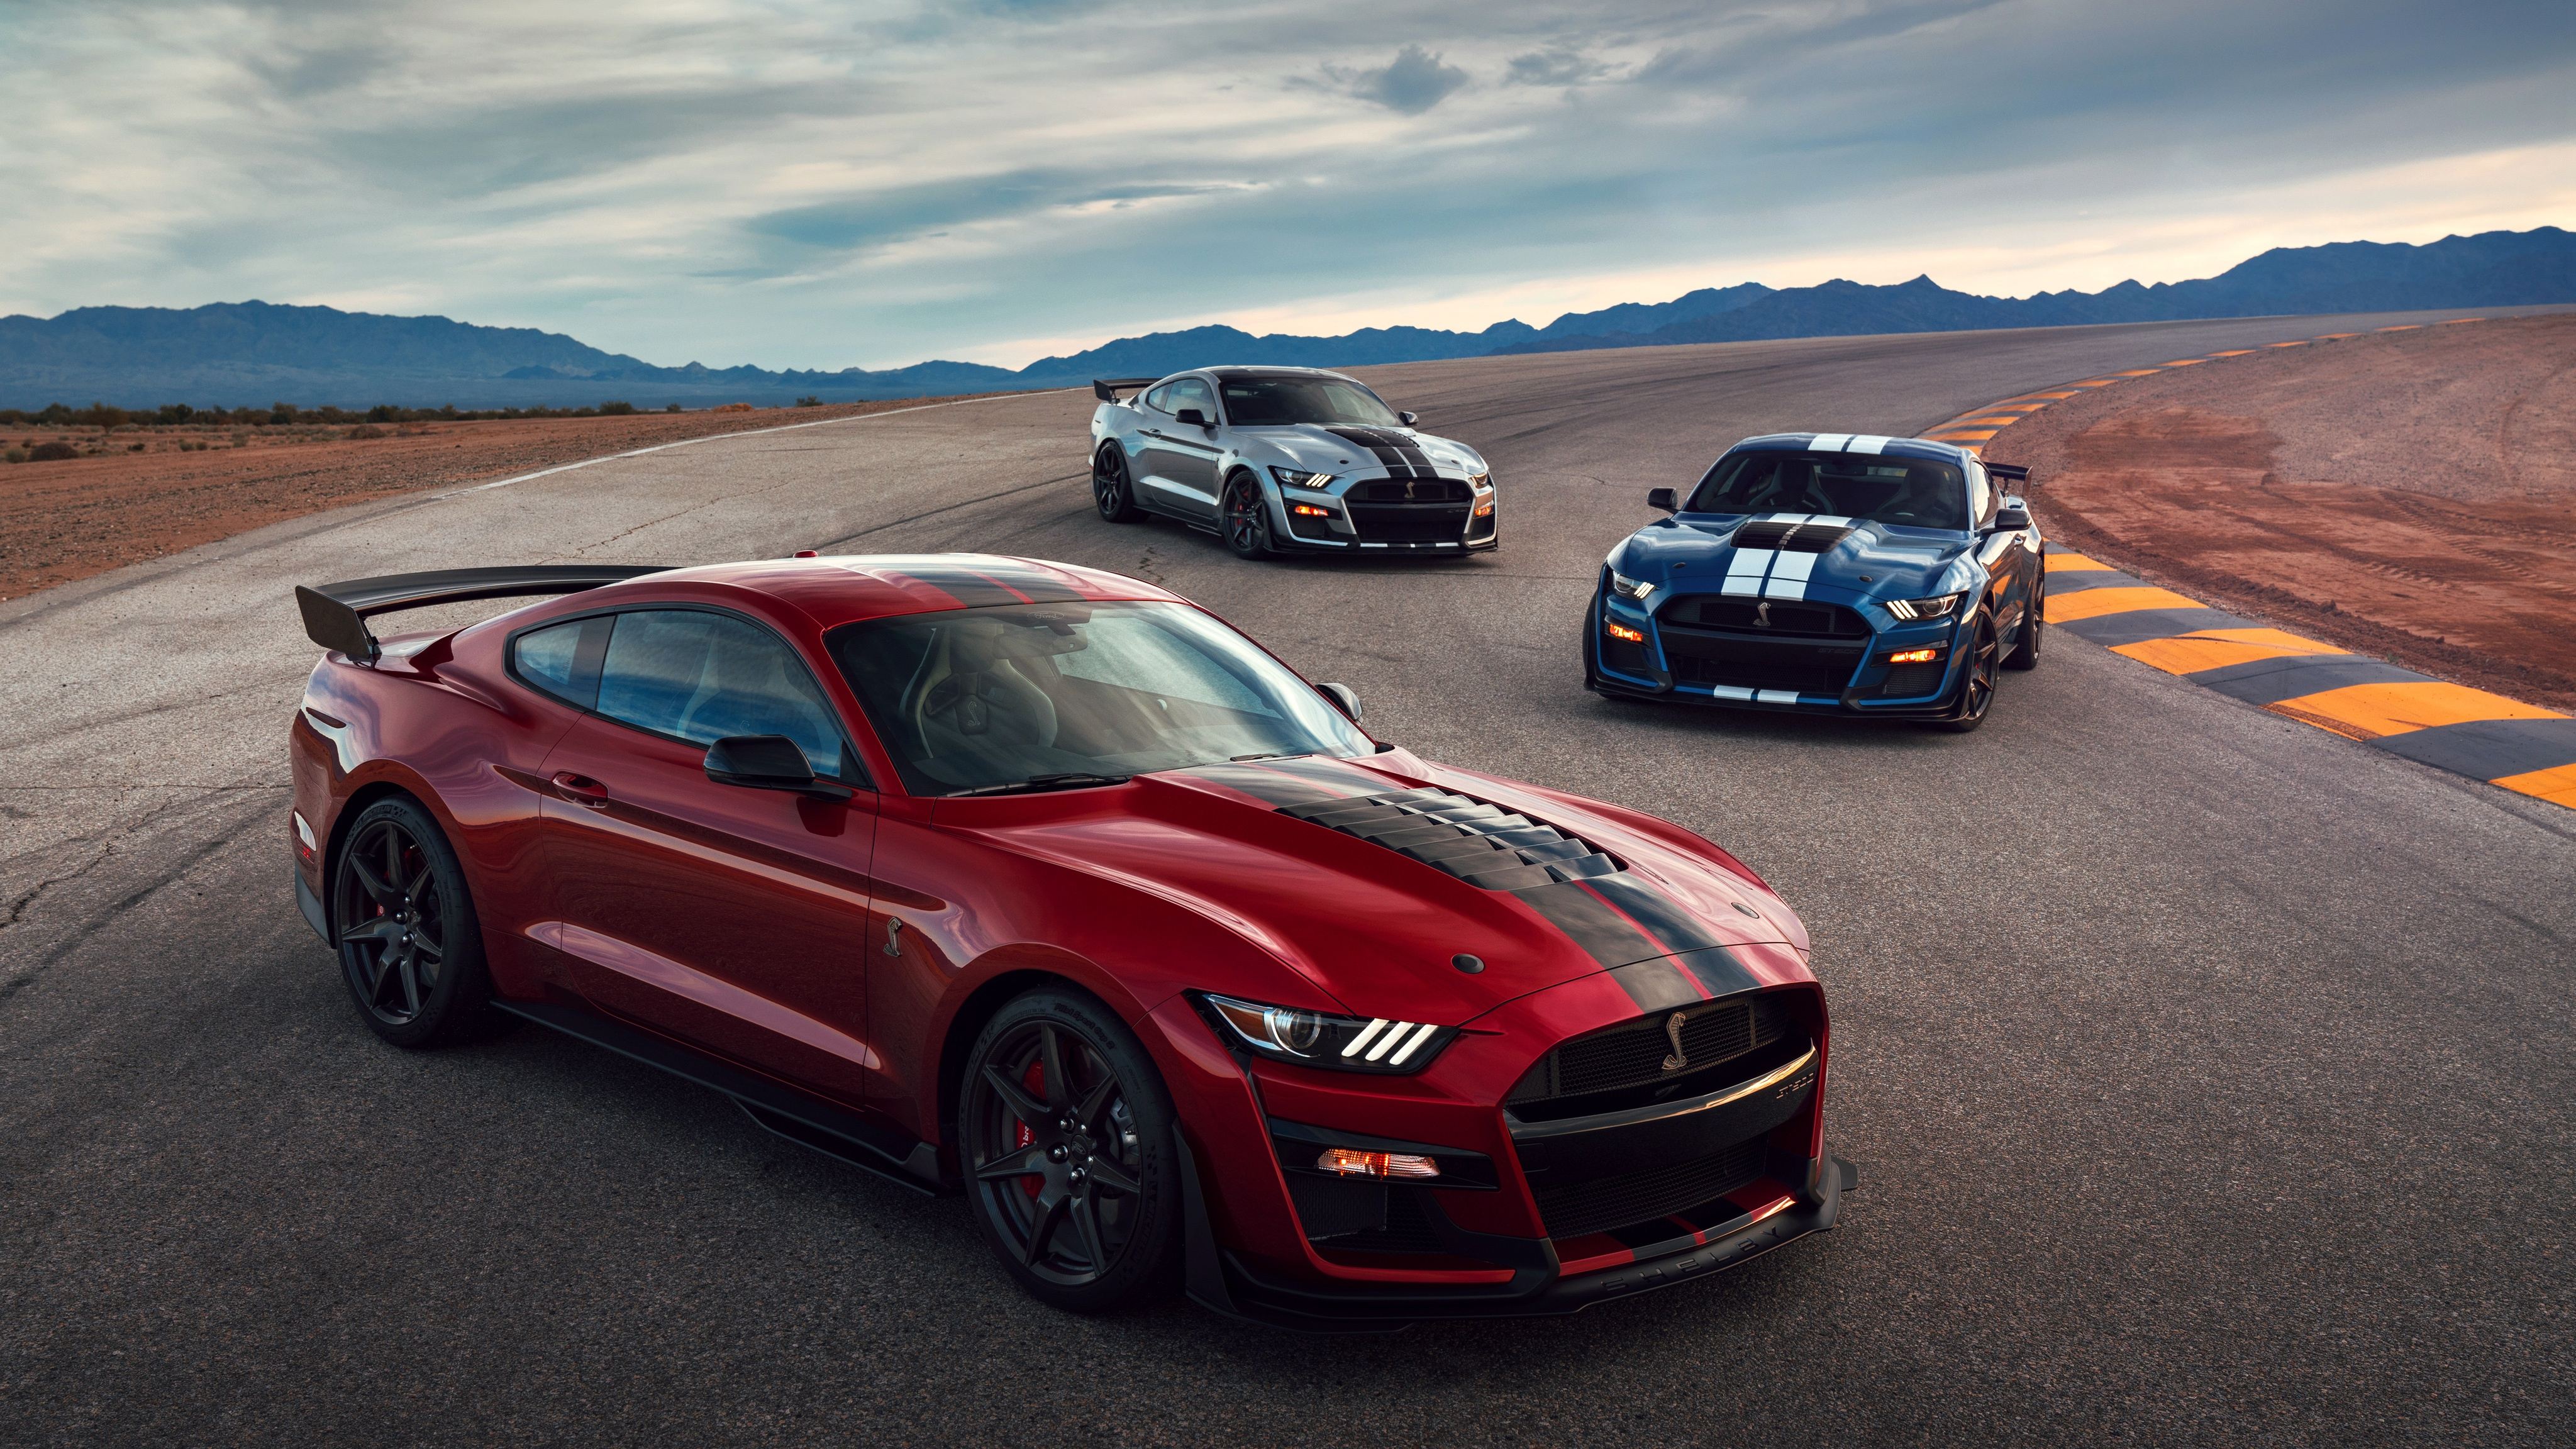 Ford Mustang Shelby Gt500 4k Ultra Hd Wallpaper Background Image